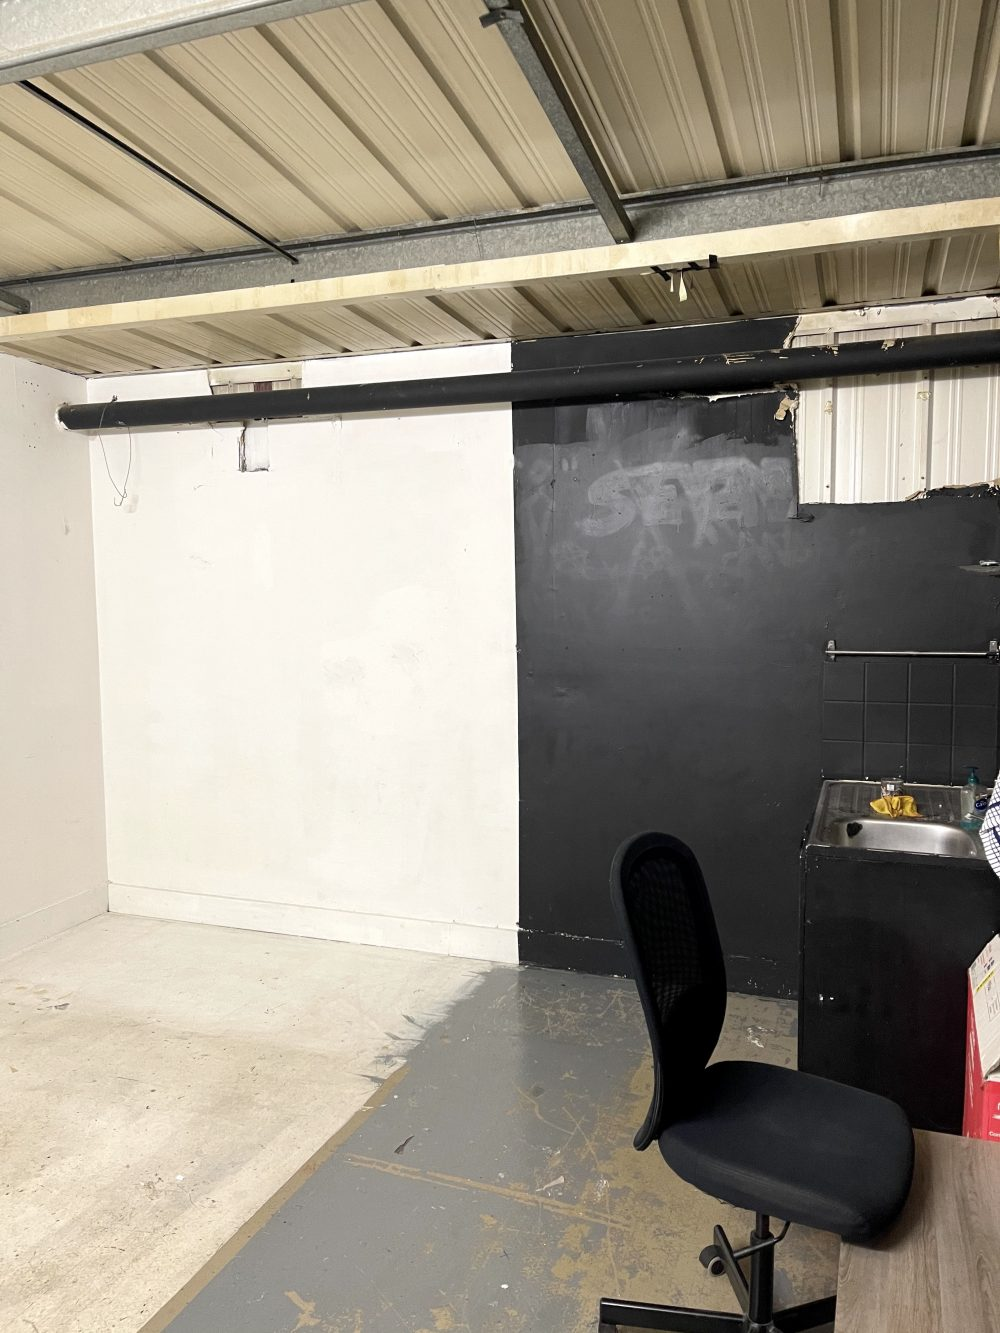 Light indurstrial unit to rent in N16 Stoke Newington Shelford Place PIc4